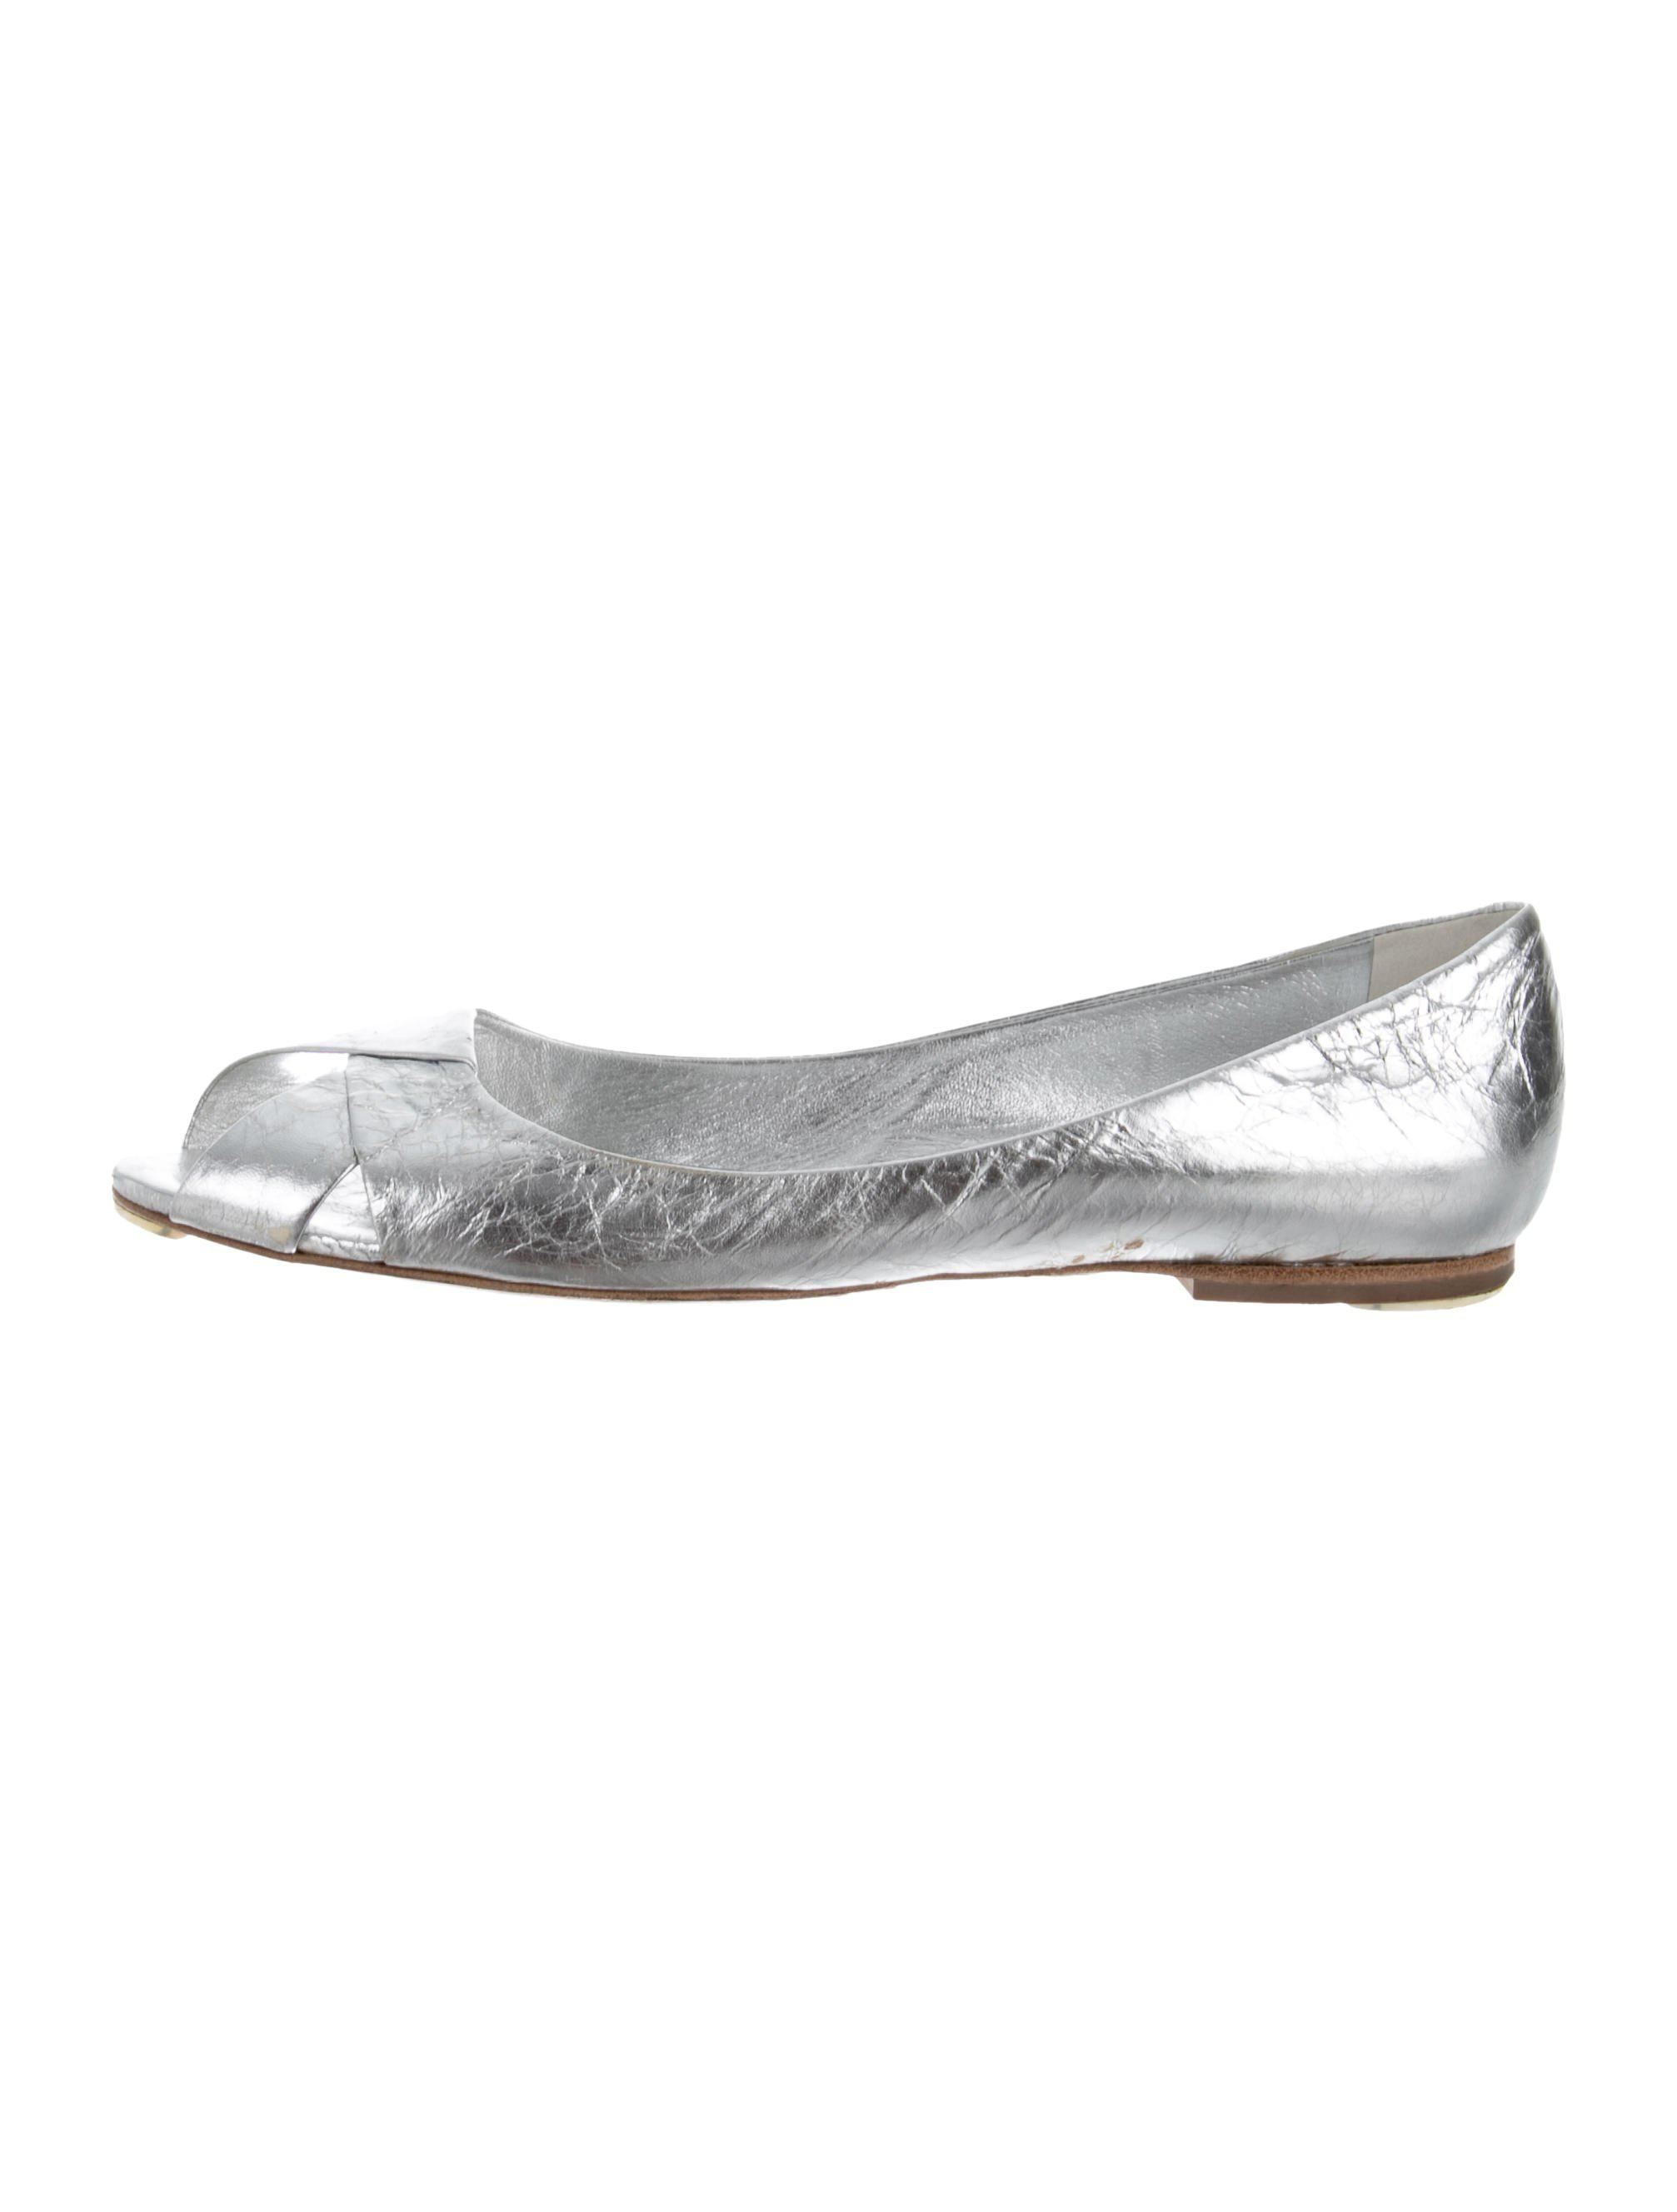 2efe7c340 Lyst - Roger Vivier Leather Flats Silver in Metallic